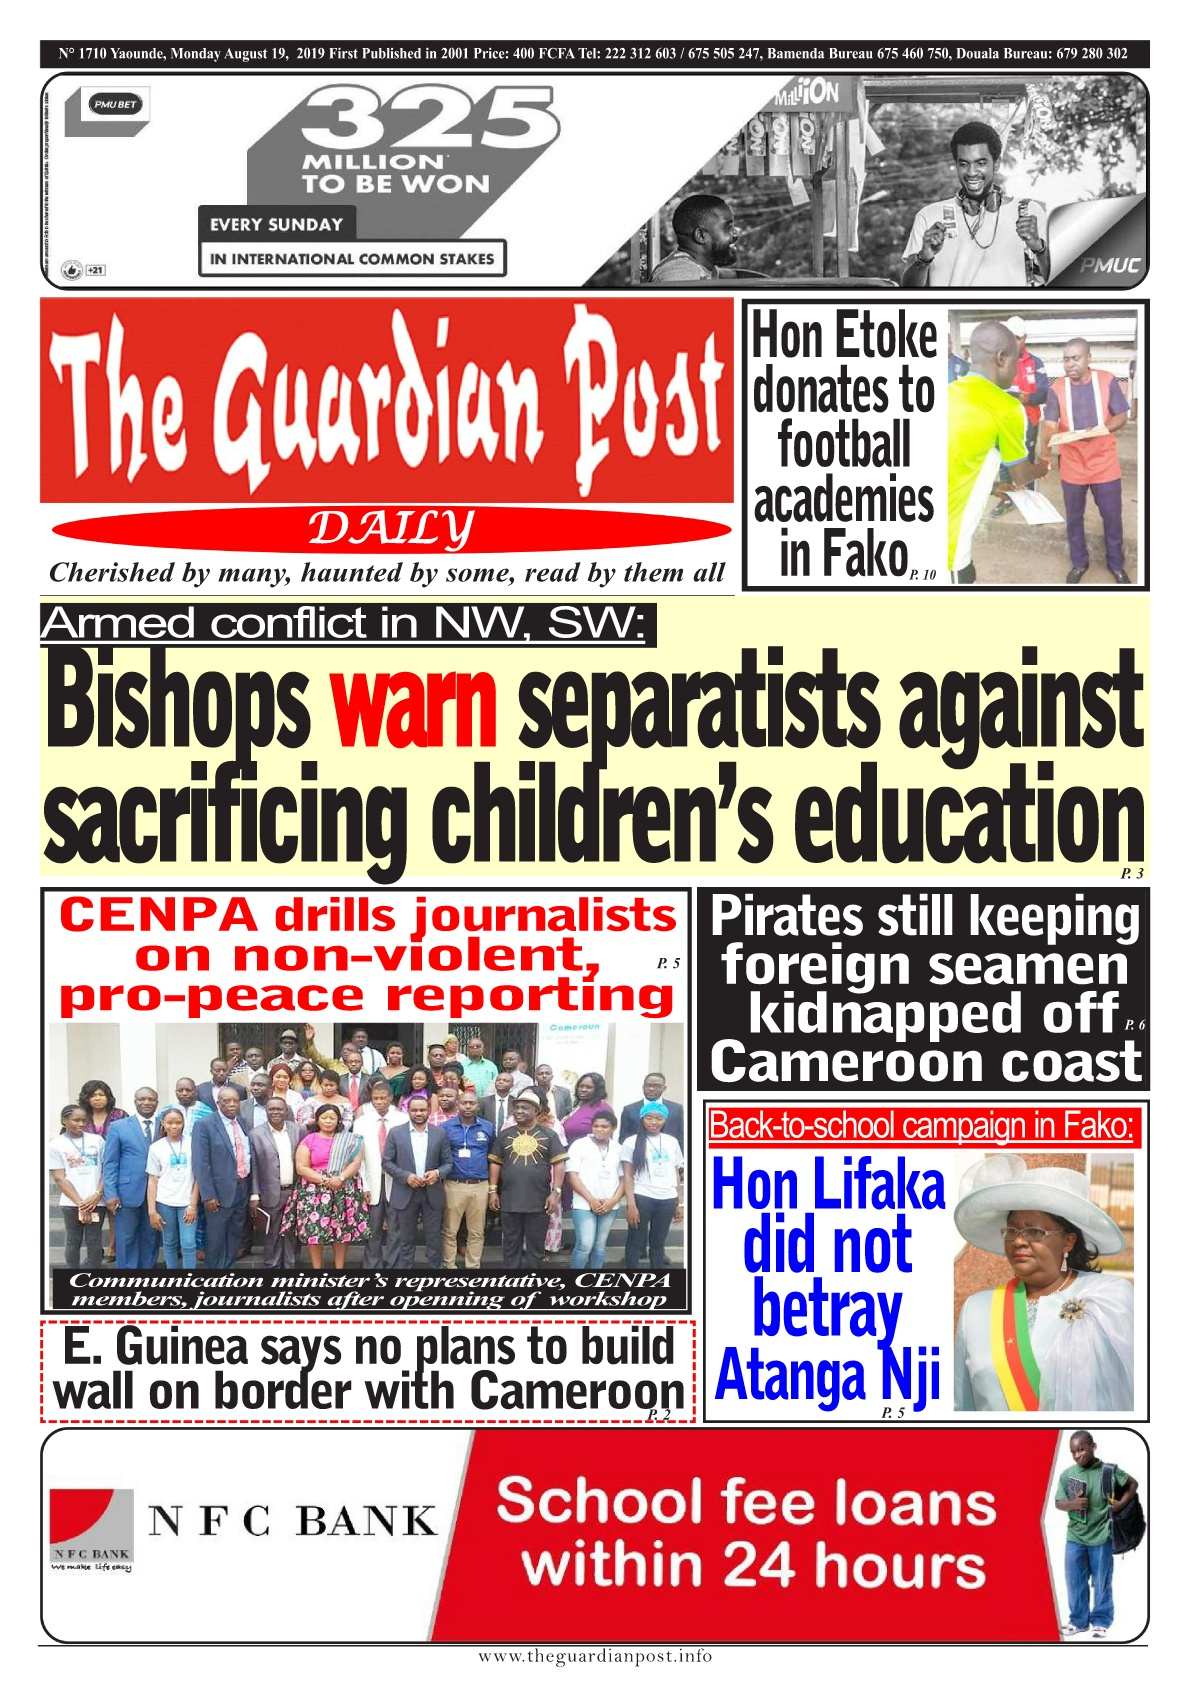 The Guardian Post - 19/08/2019